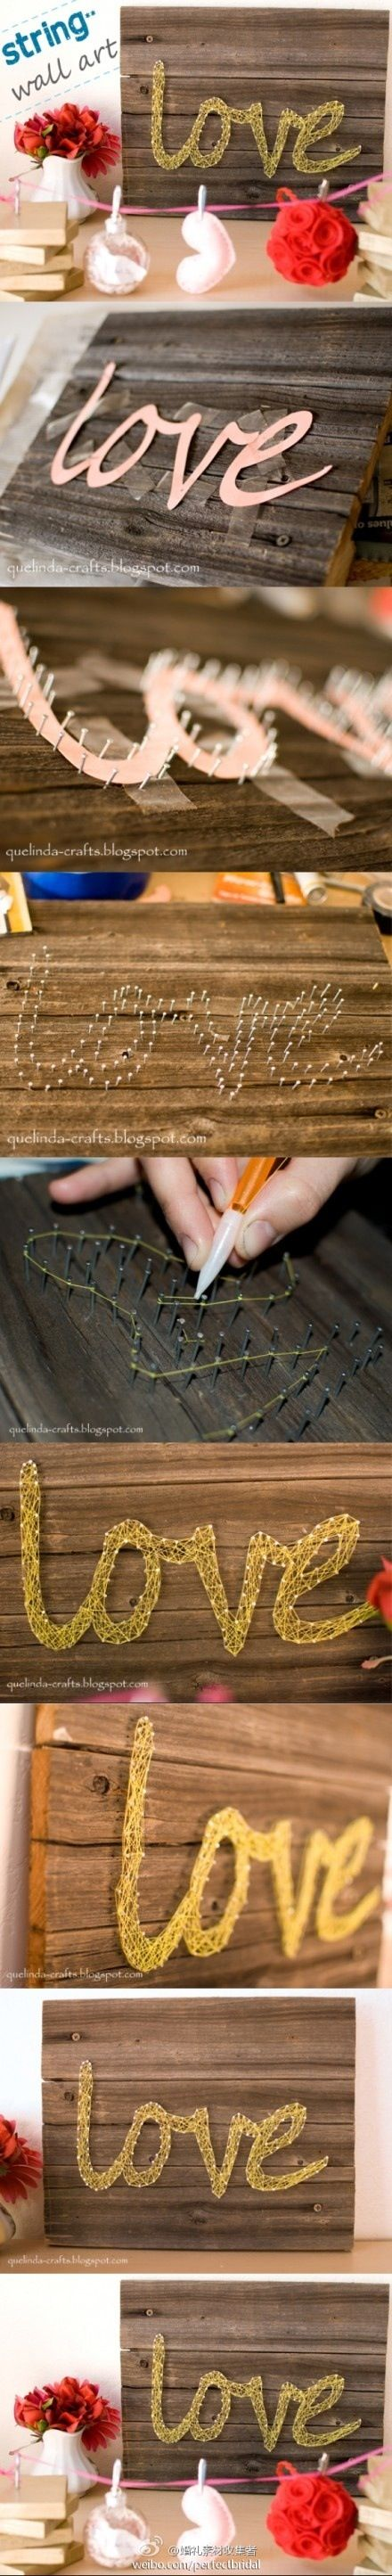 String word art tutorialDiy Ideas, Nails Art, Wallart, Diy Crafts, Cute Ideas, String Wall Art, Diy Wall Art, String Art, Diy Projects